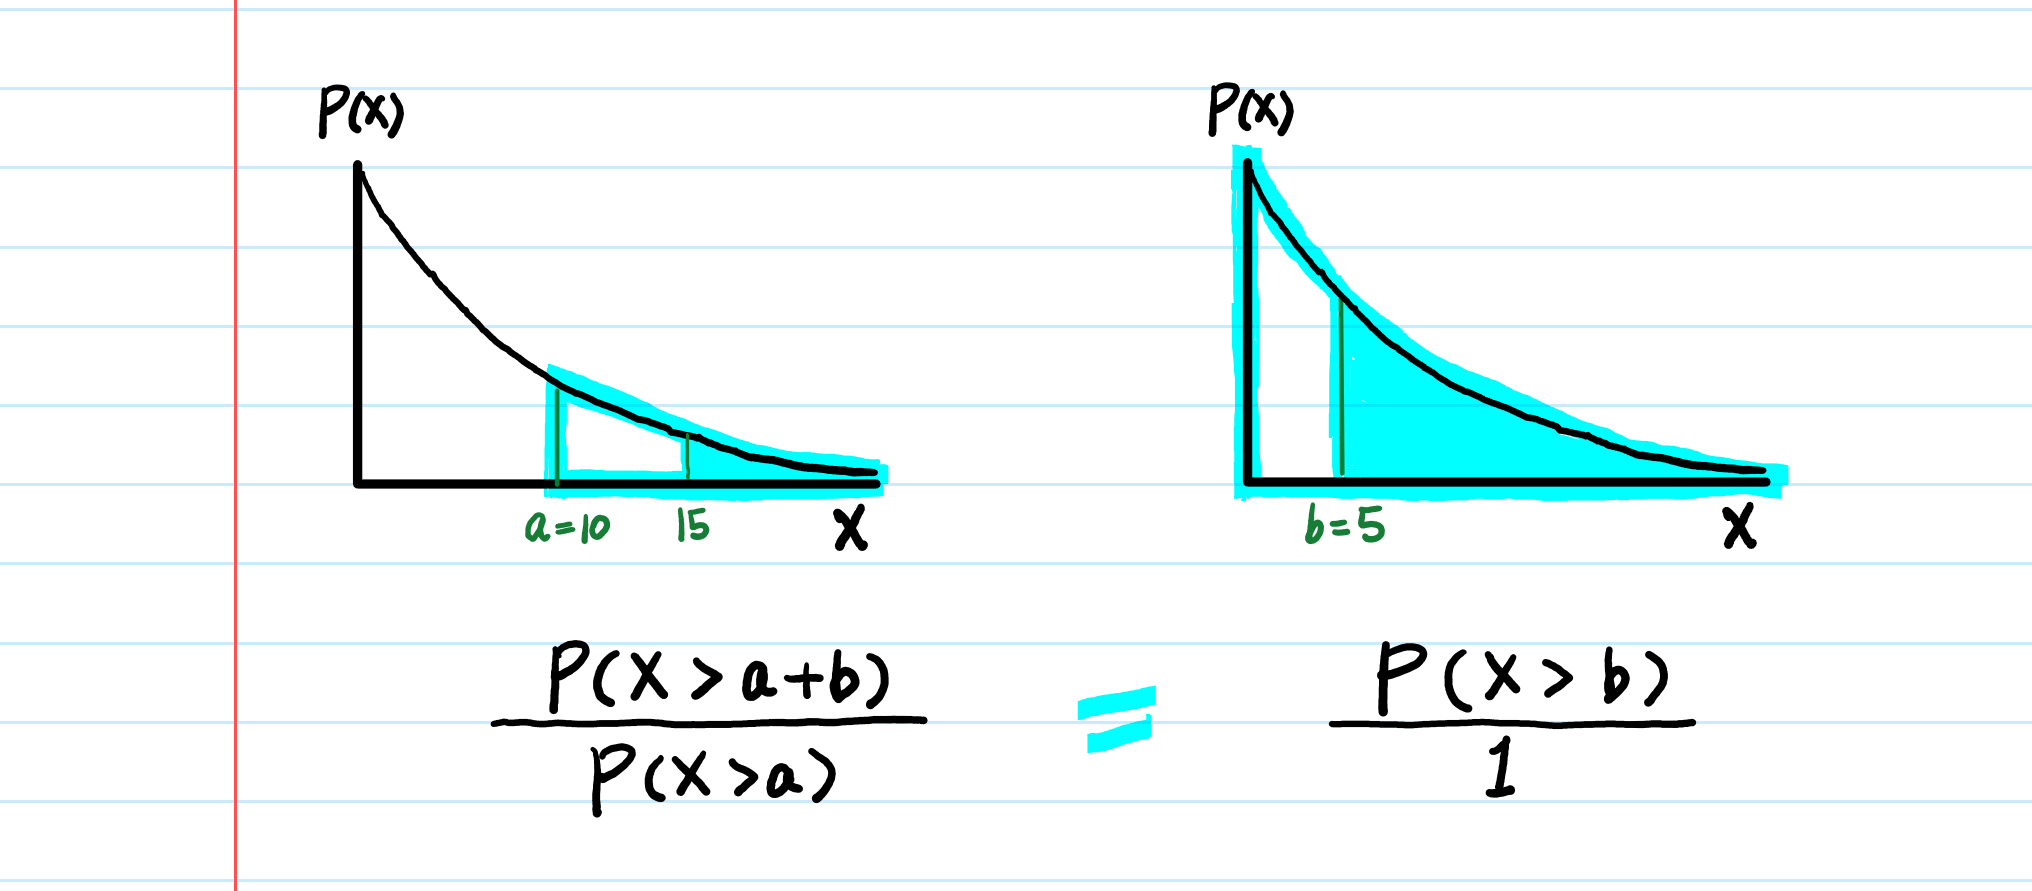 Exponential Distribution Intuition, Derivation and Applications